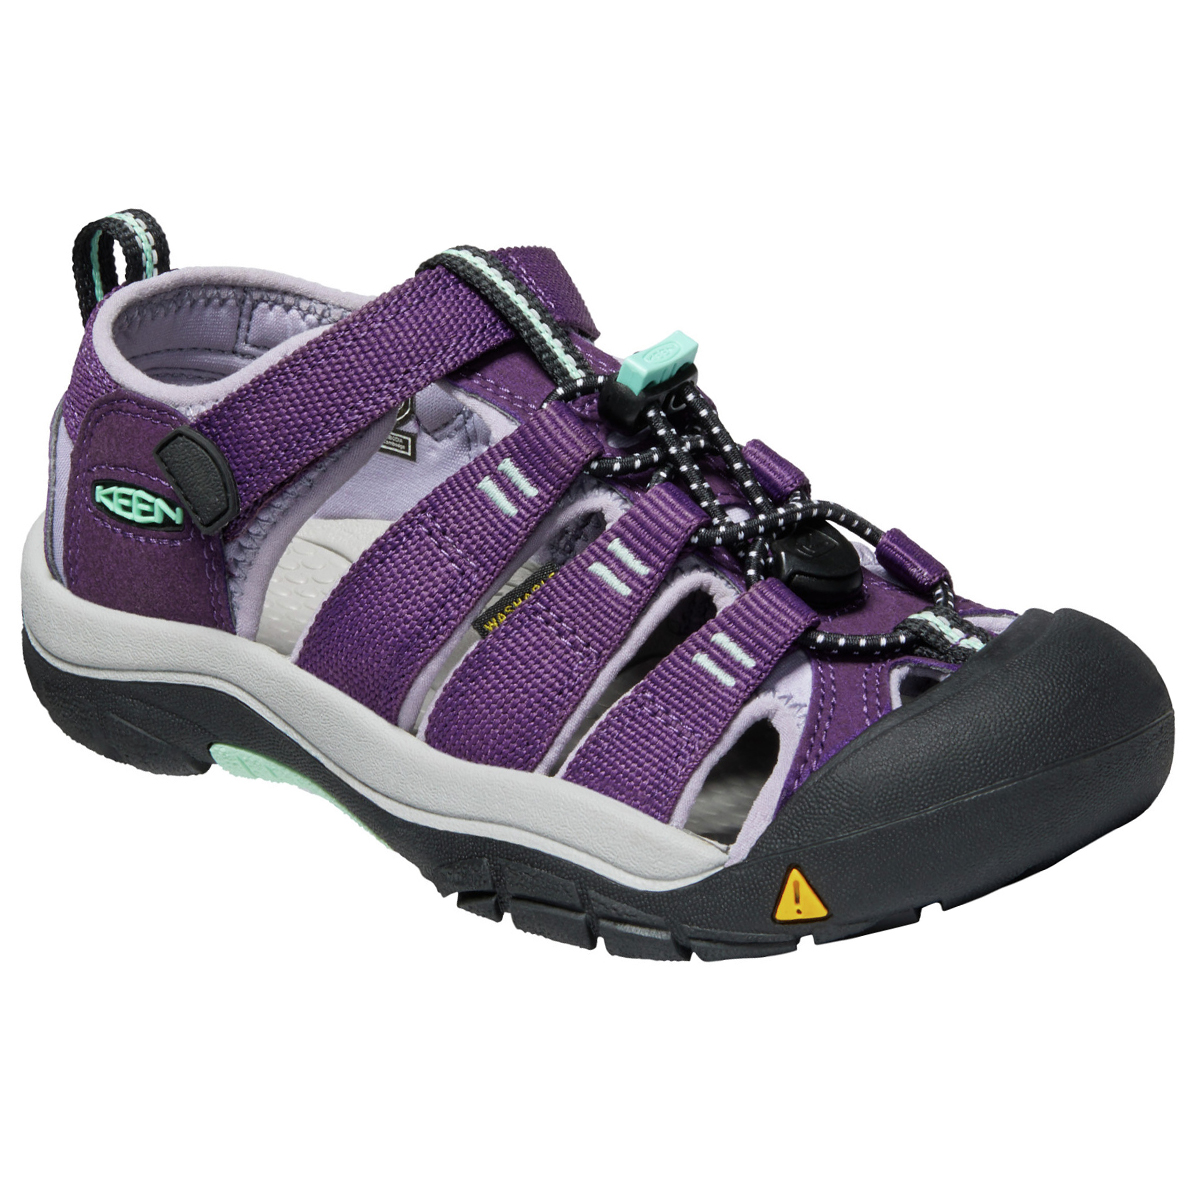 Keen Kids' Newport H2 Sandal - Purple, 10